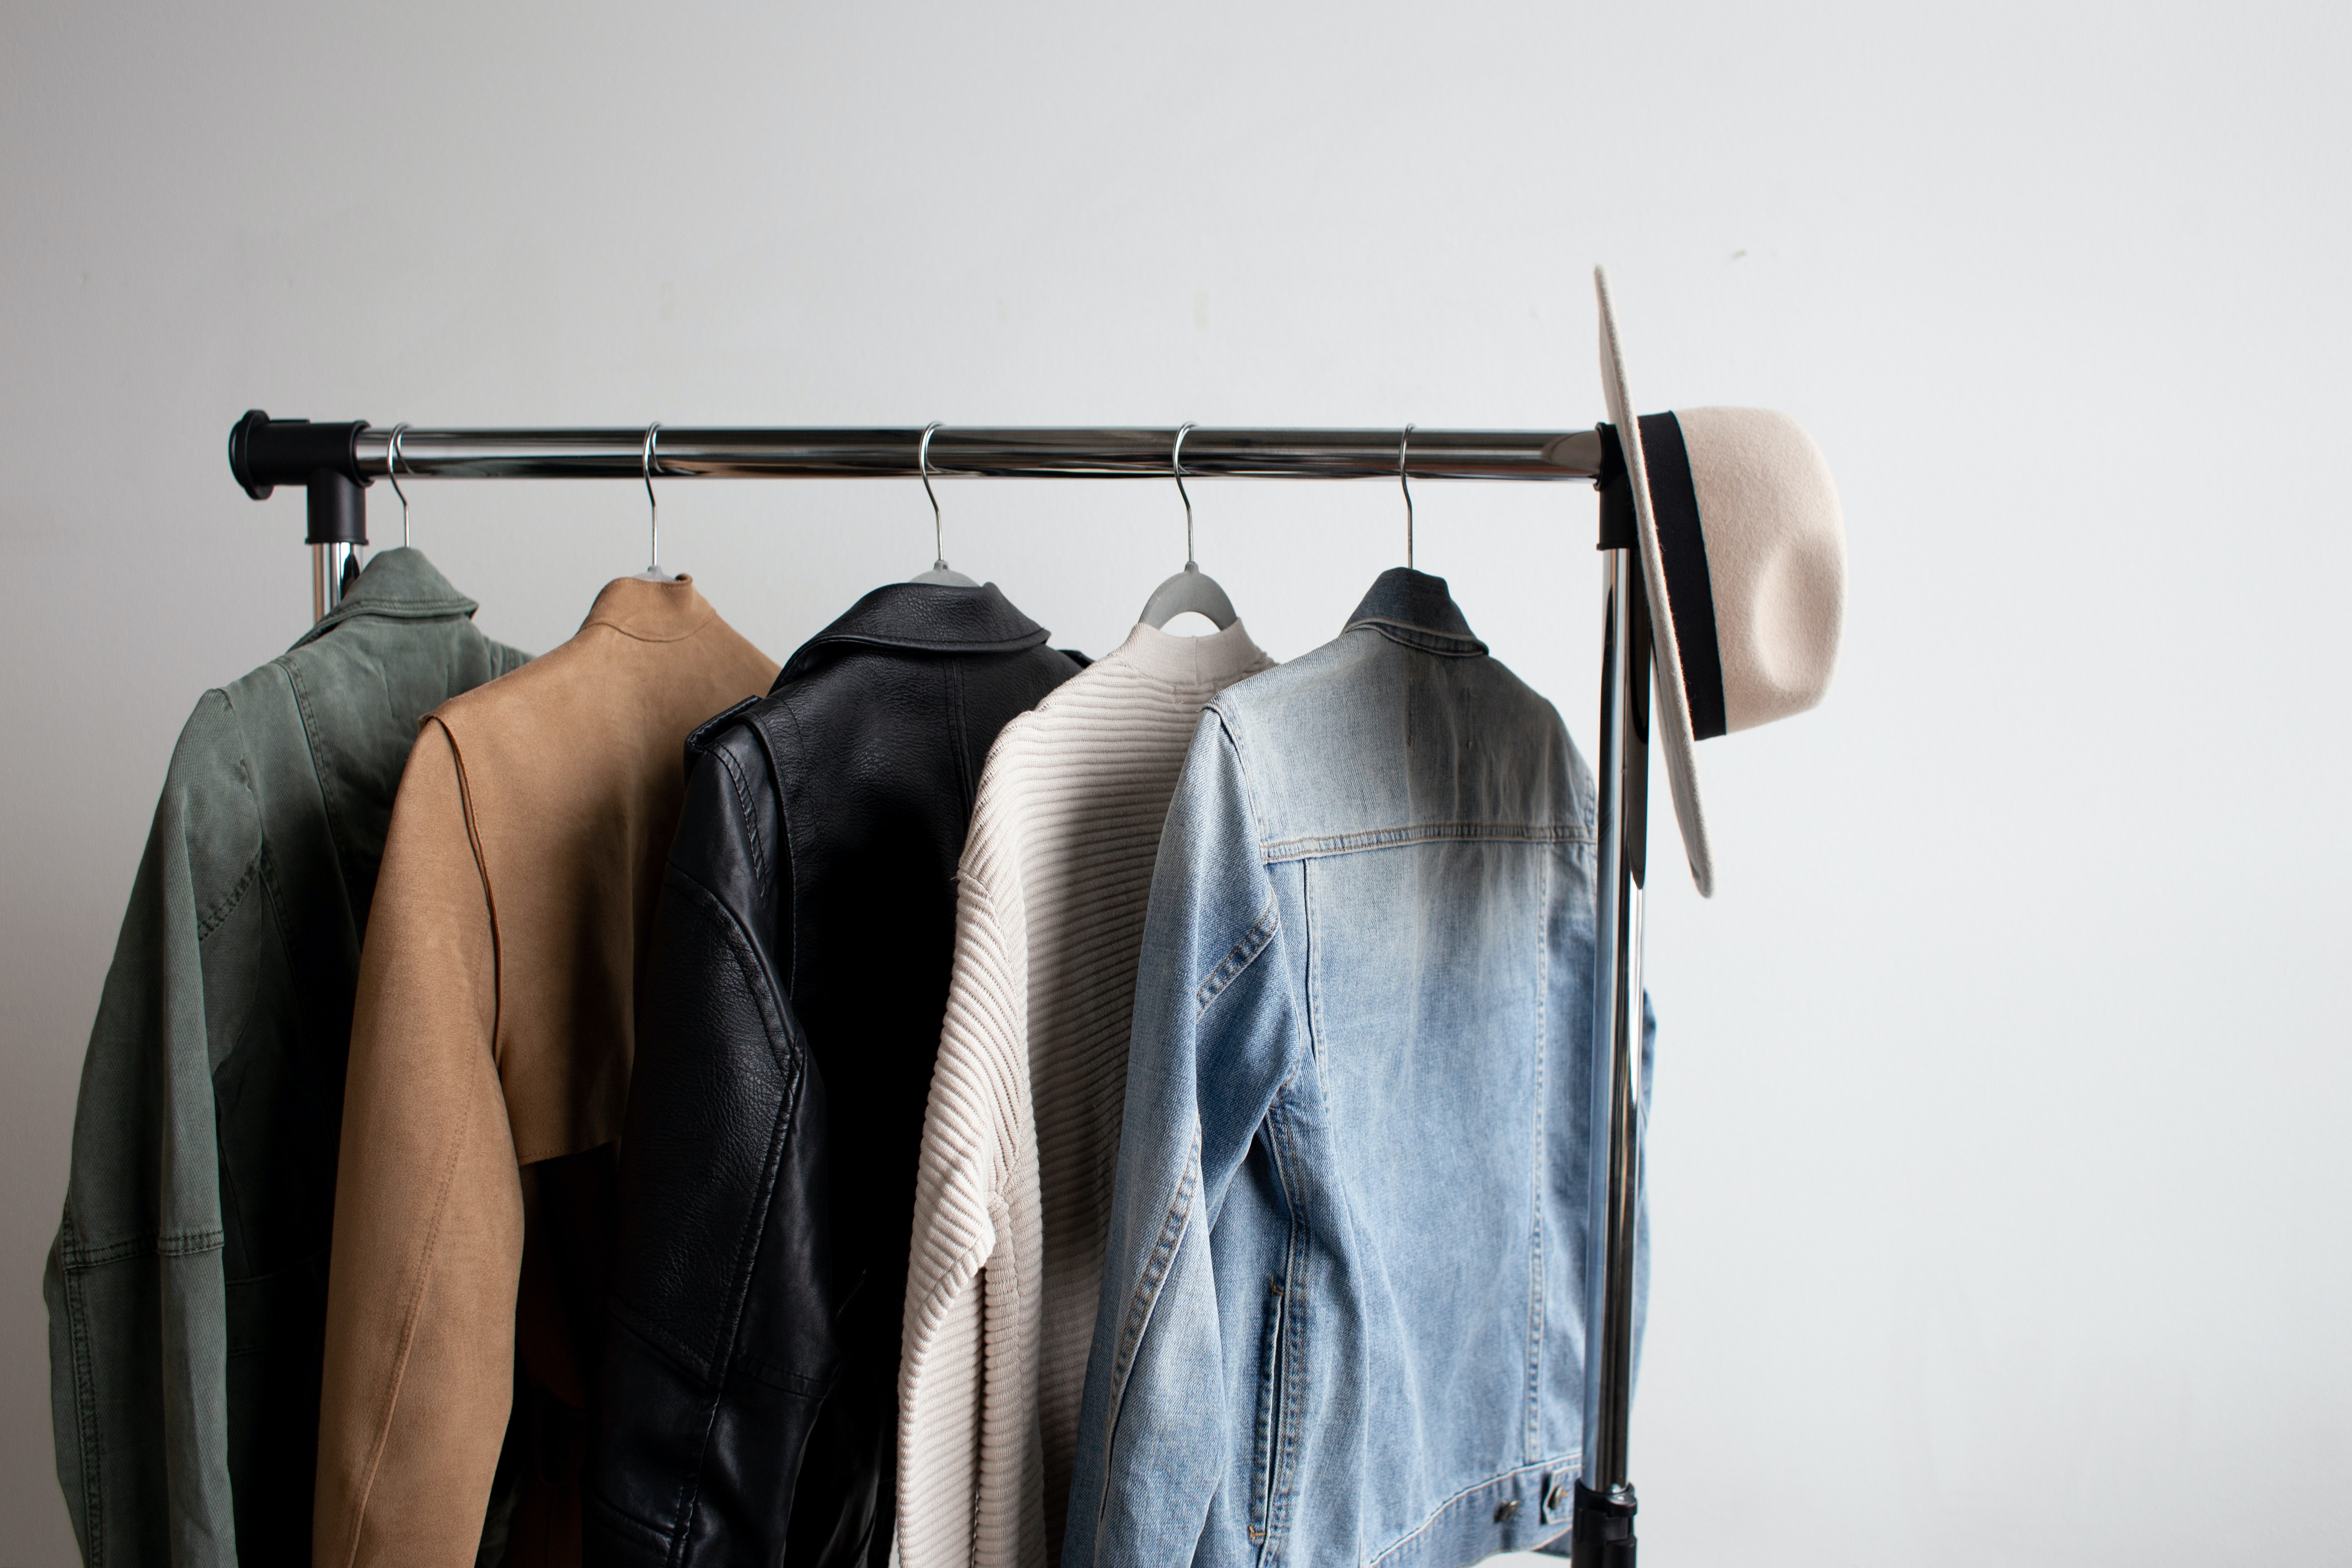 jackets hanging on a rack